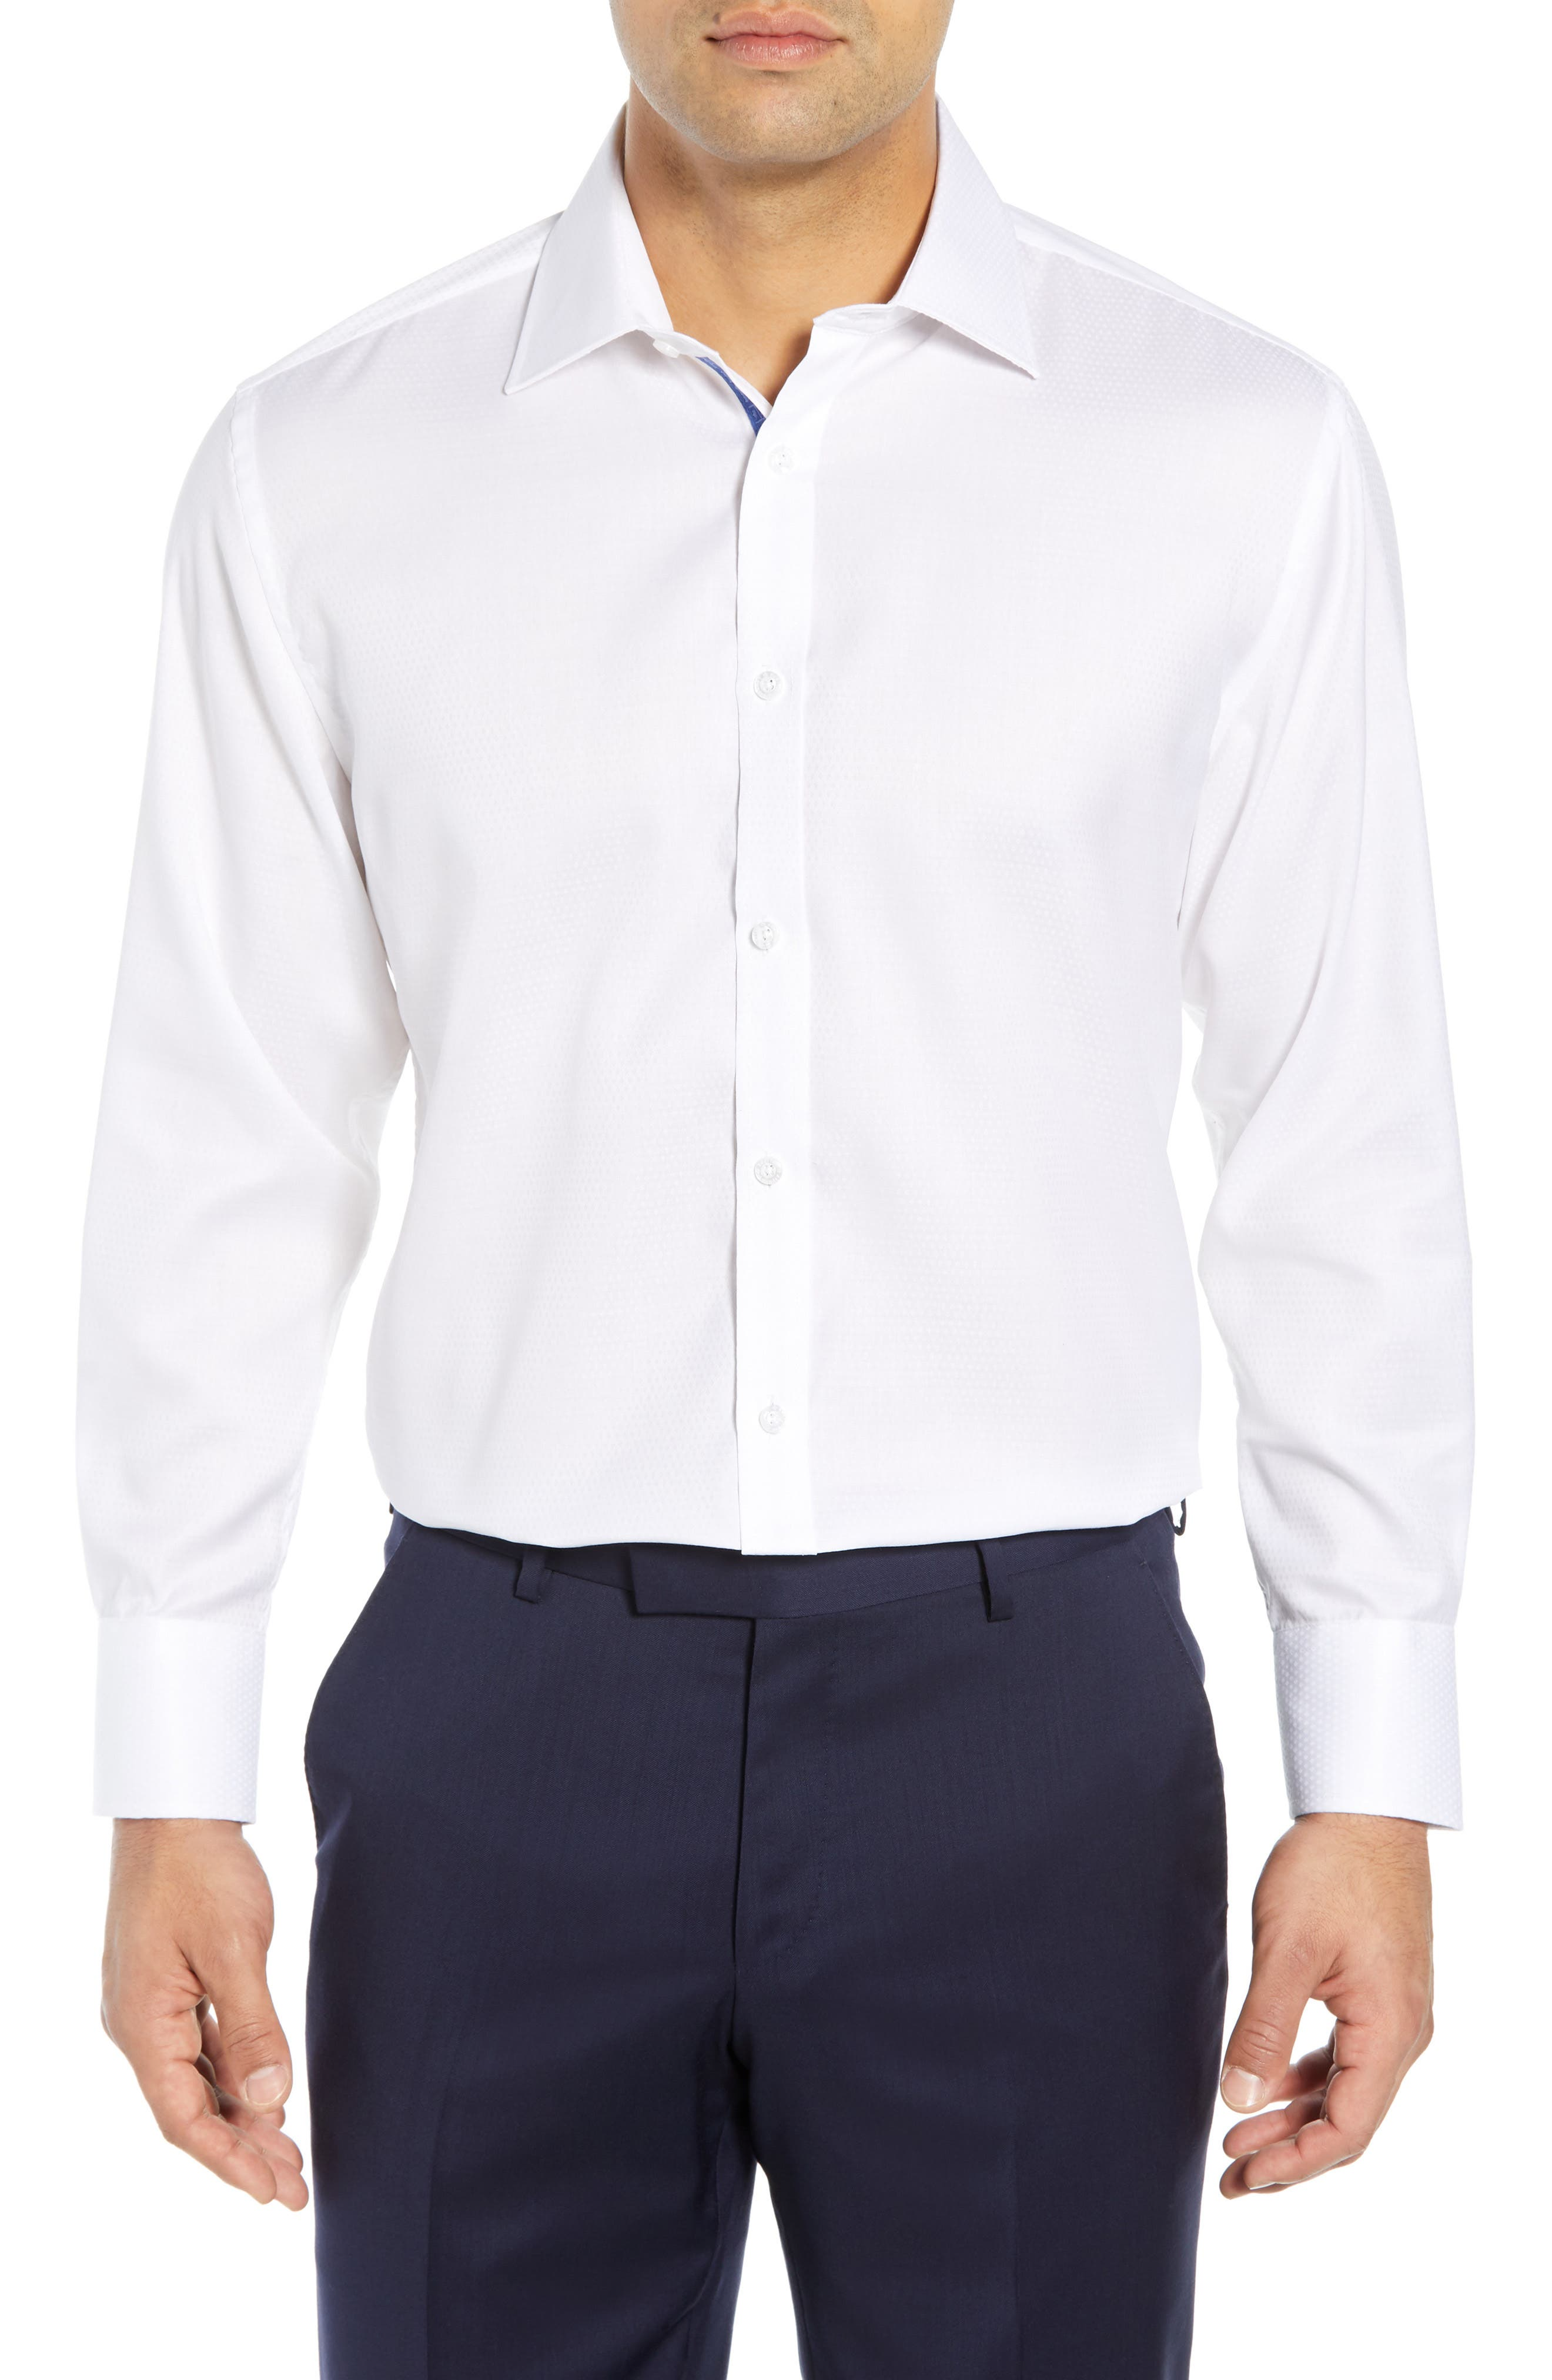 ENGLISH LAUNDRY Regular Fit Solid Dress Shirt in White